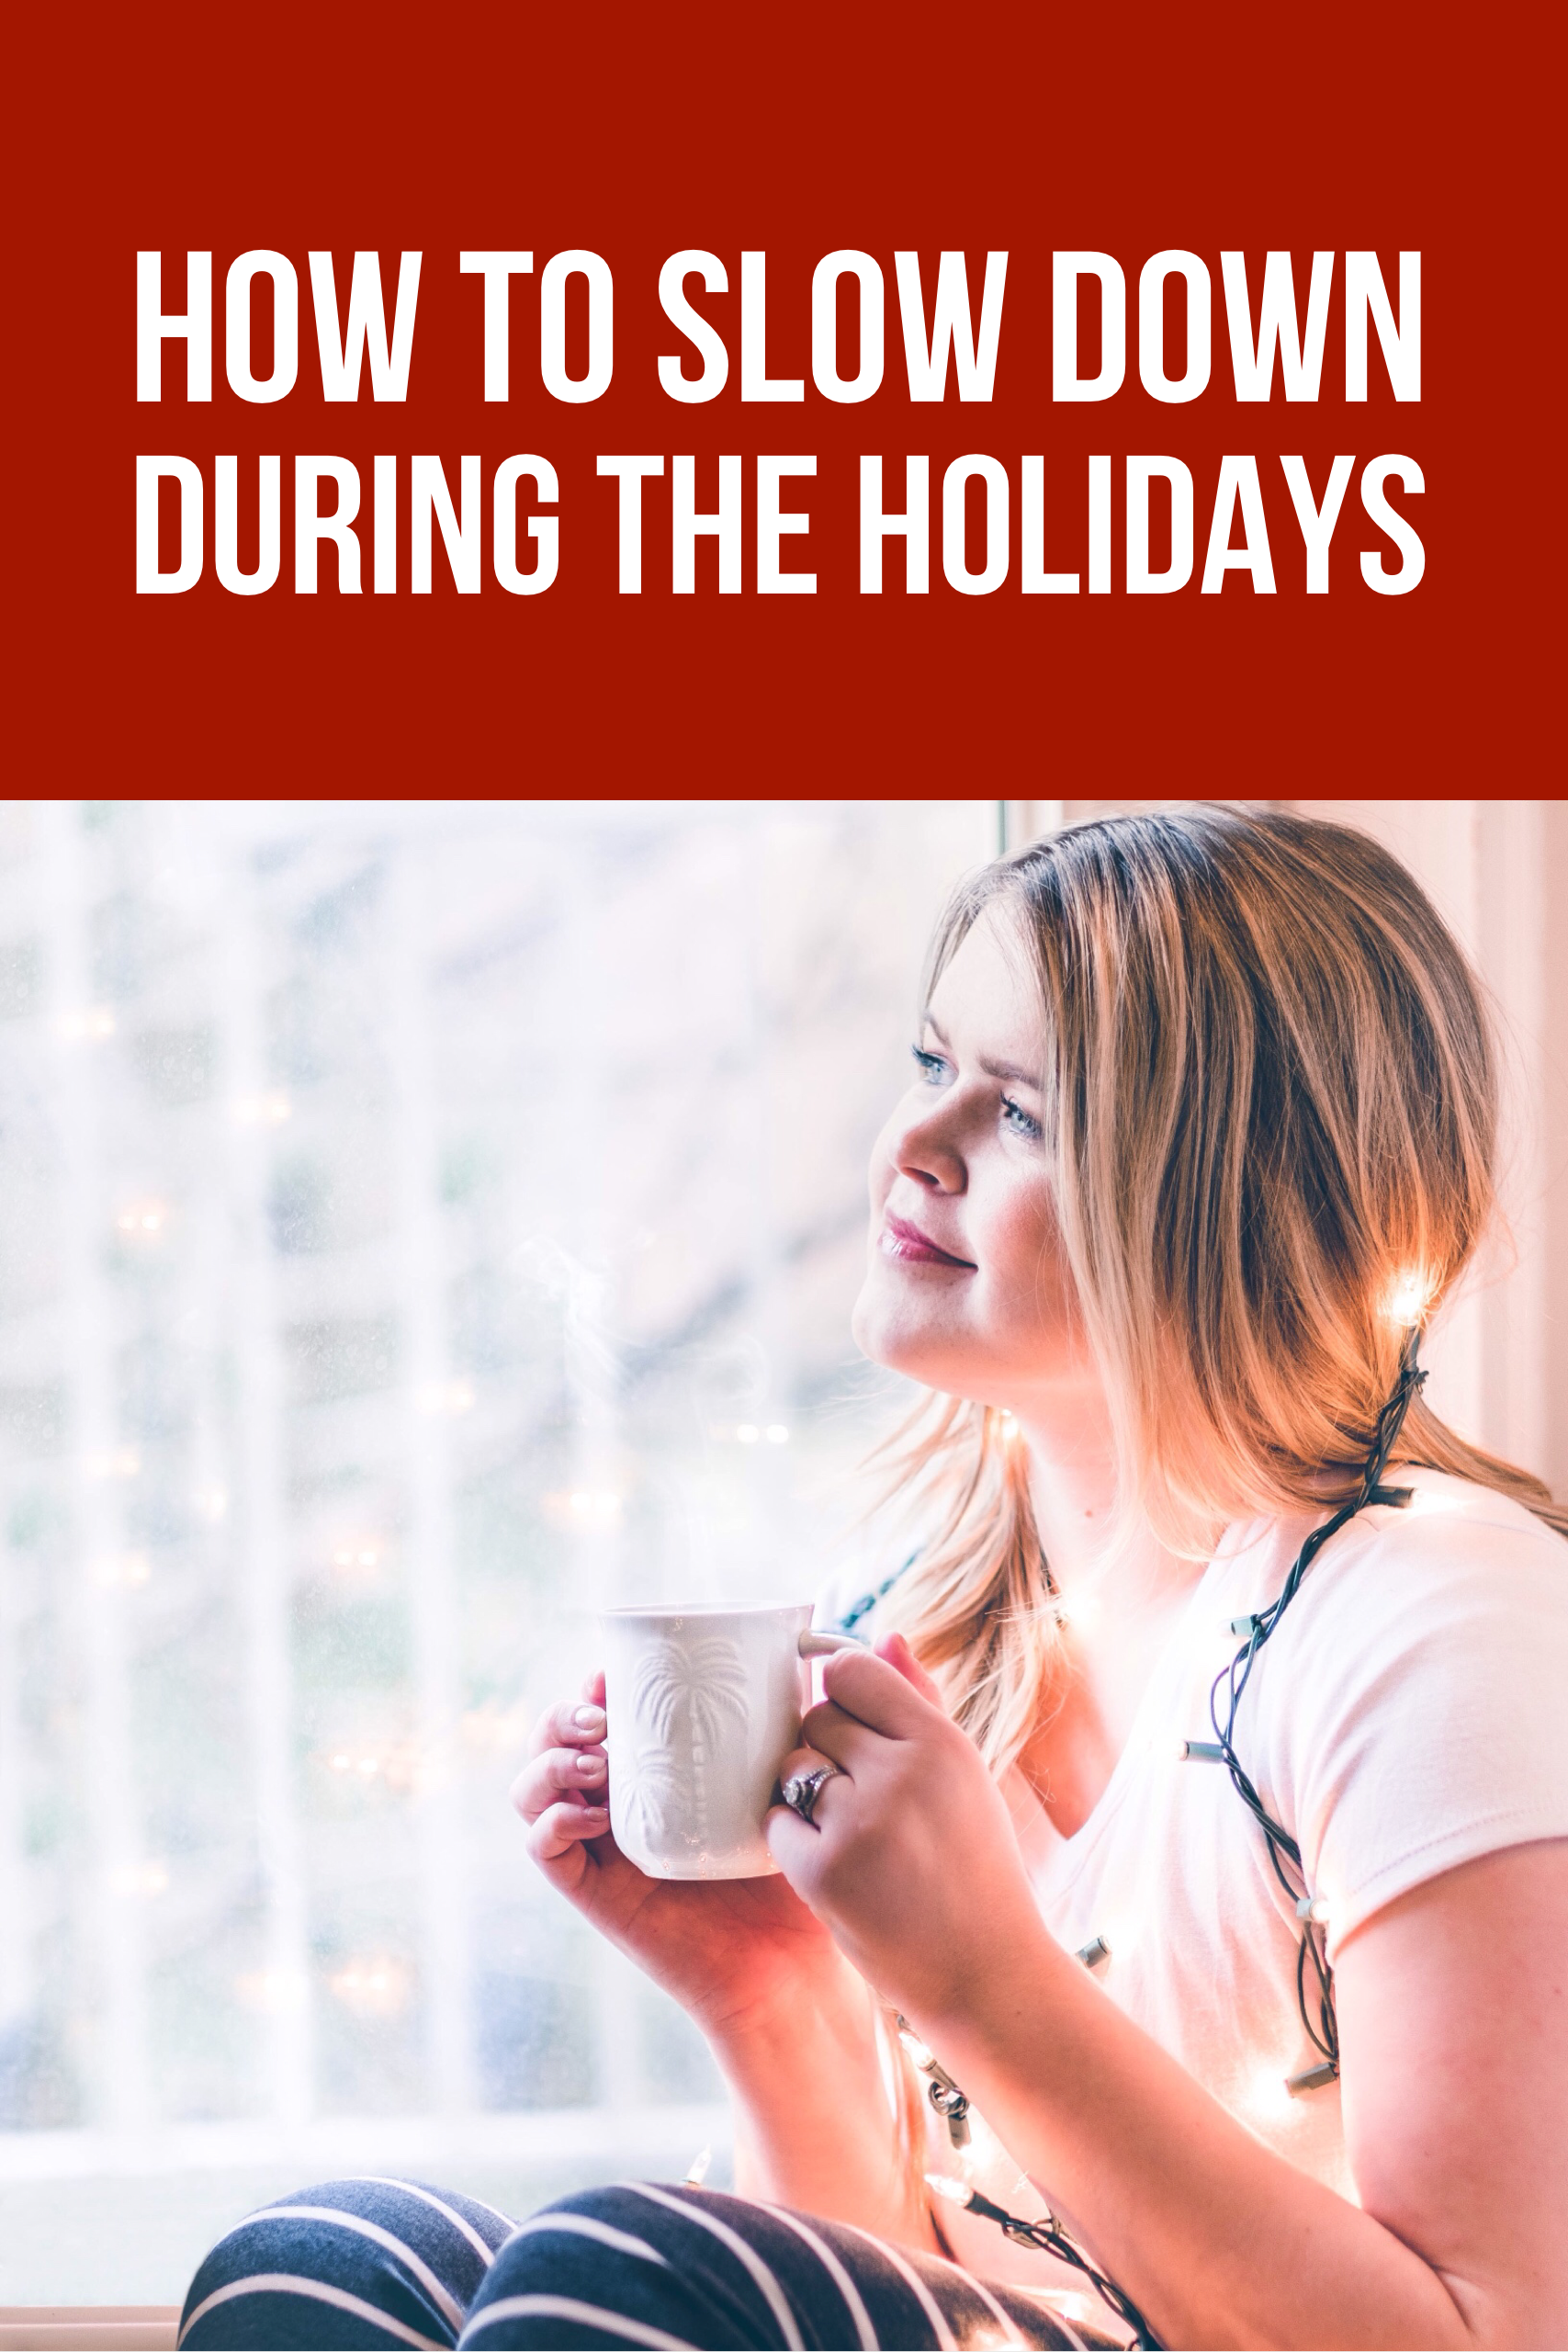 This is the best way to slow down and cope with stress during the holidays.